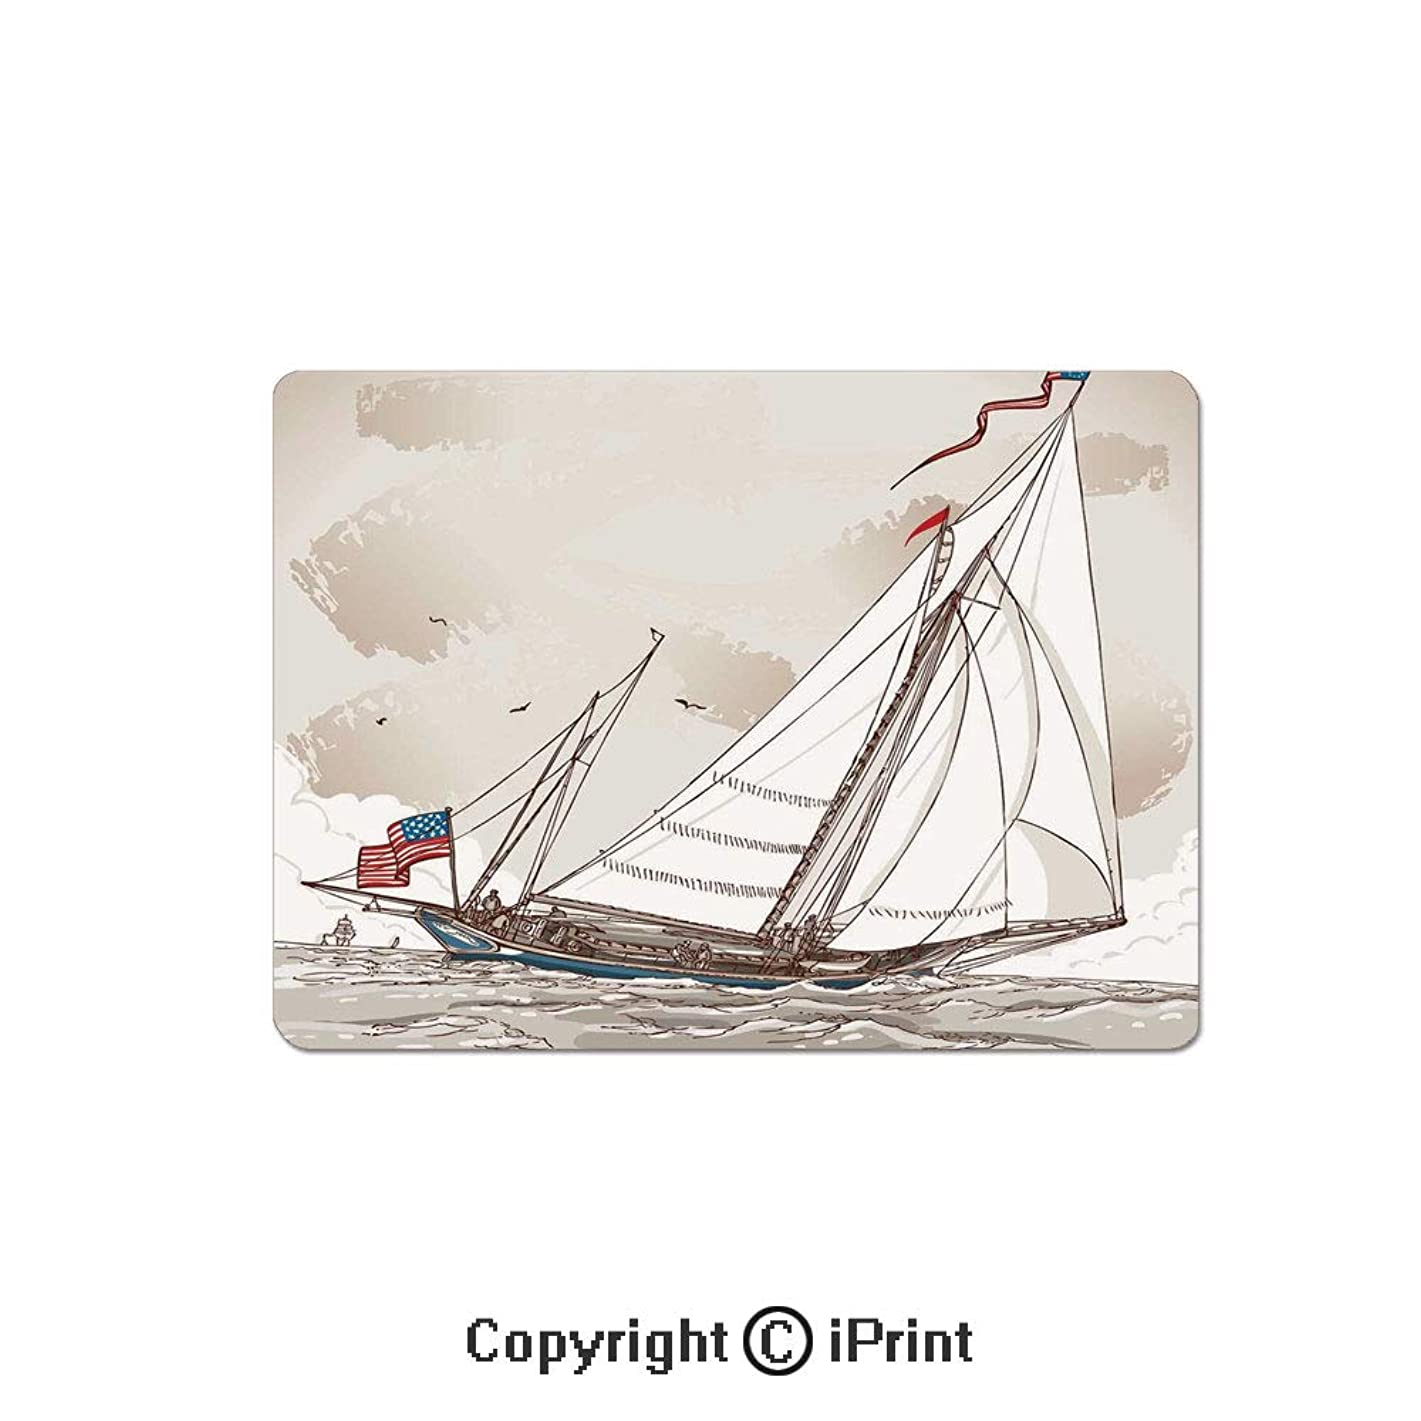 Anti-Slip Mouse Pad,Illustration of a Retro View of Antique American Yacht with Flags Ocean Mouse Mat,Non-Slip Rubber Base Mousepad,7.9x9.5 inch,Light Grey Tan White